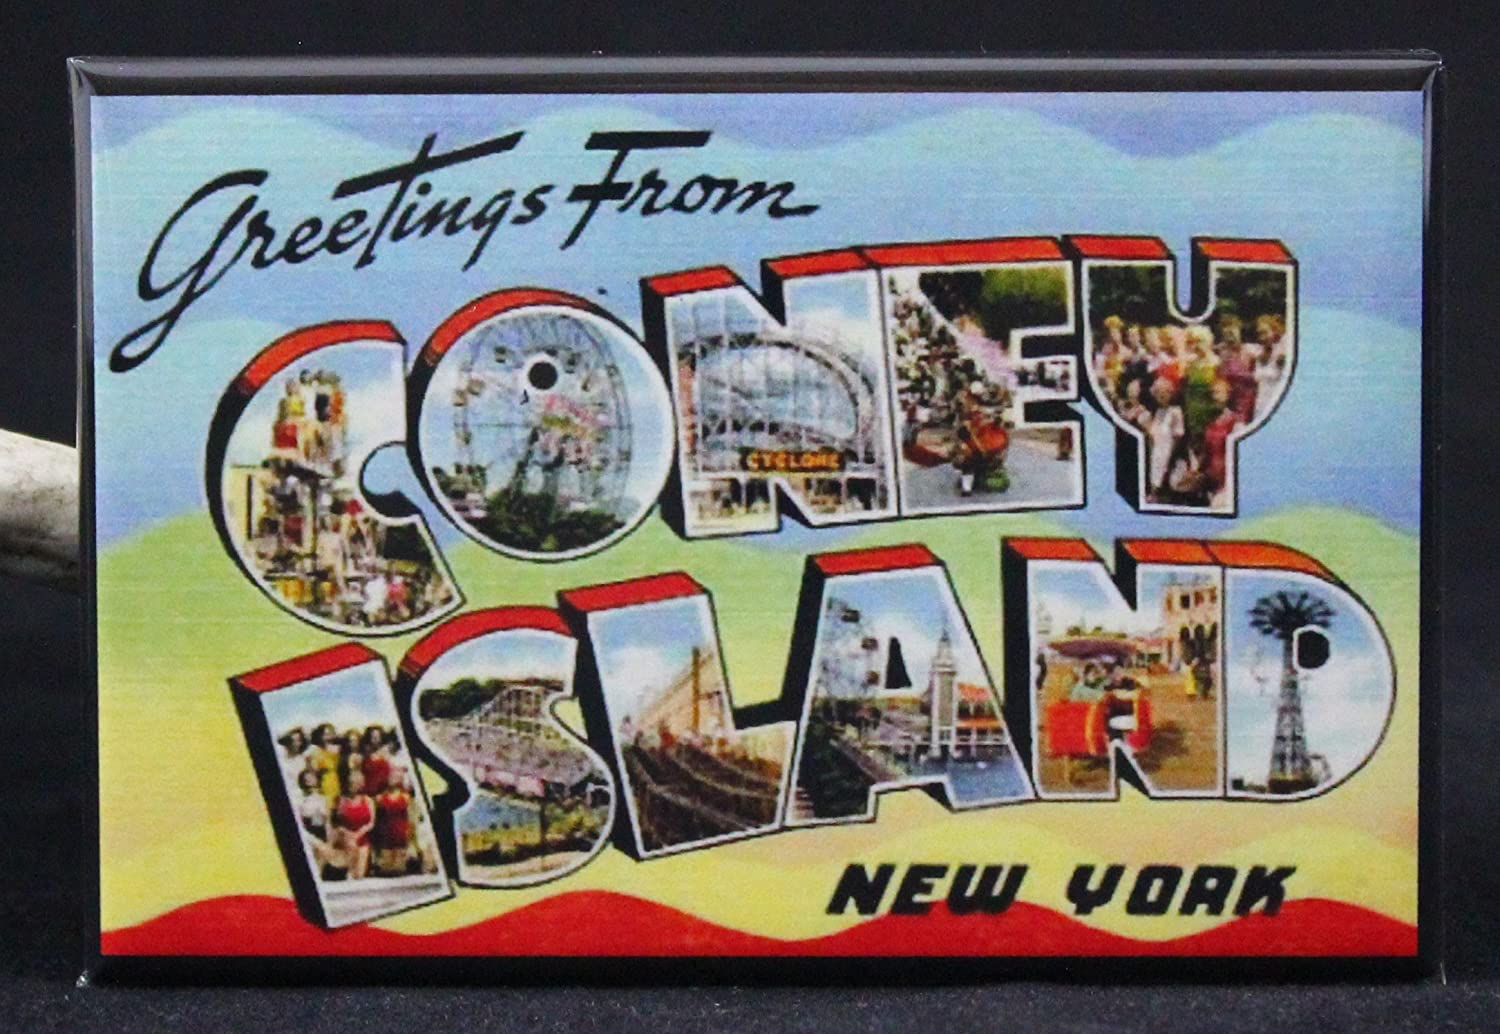 Amazon Greetings From Coney Island Refrigerator Magnet